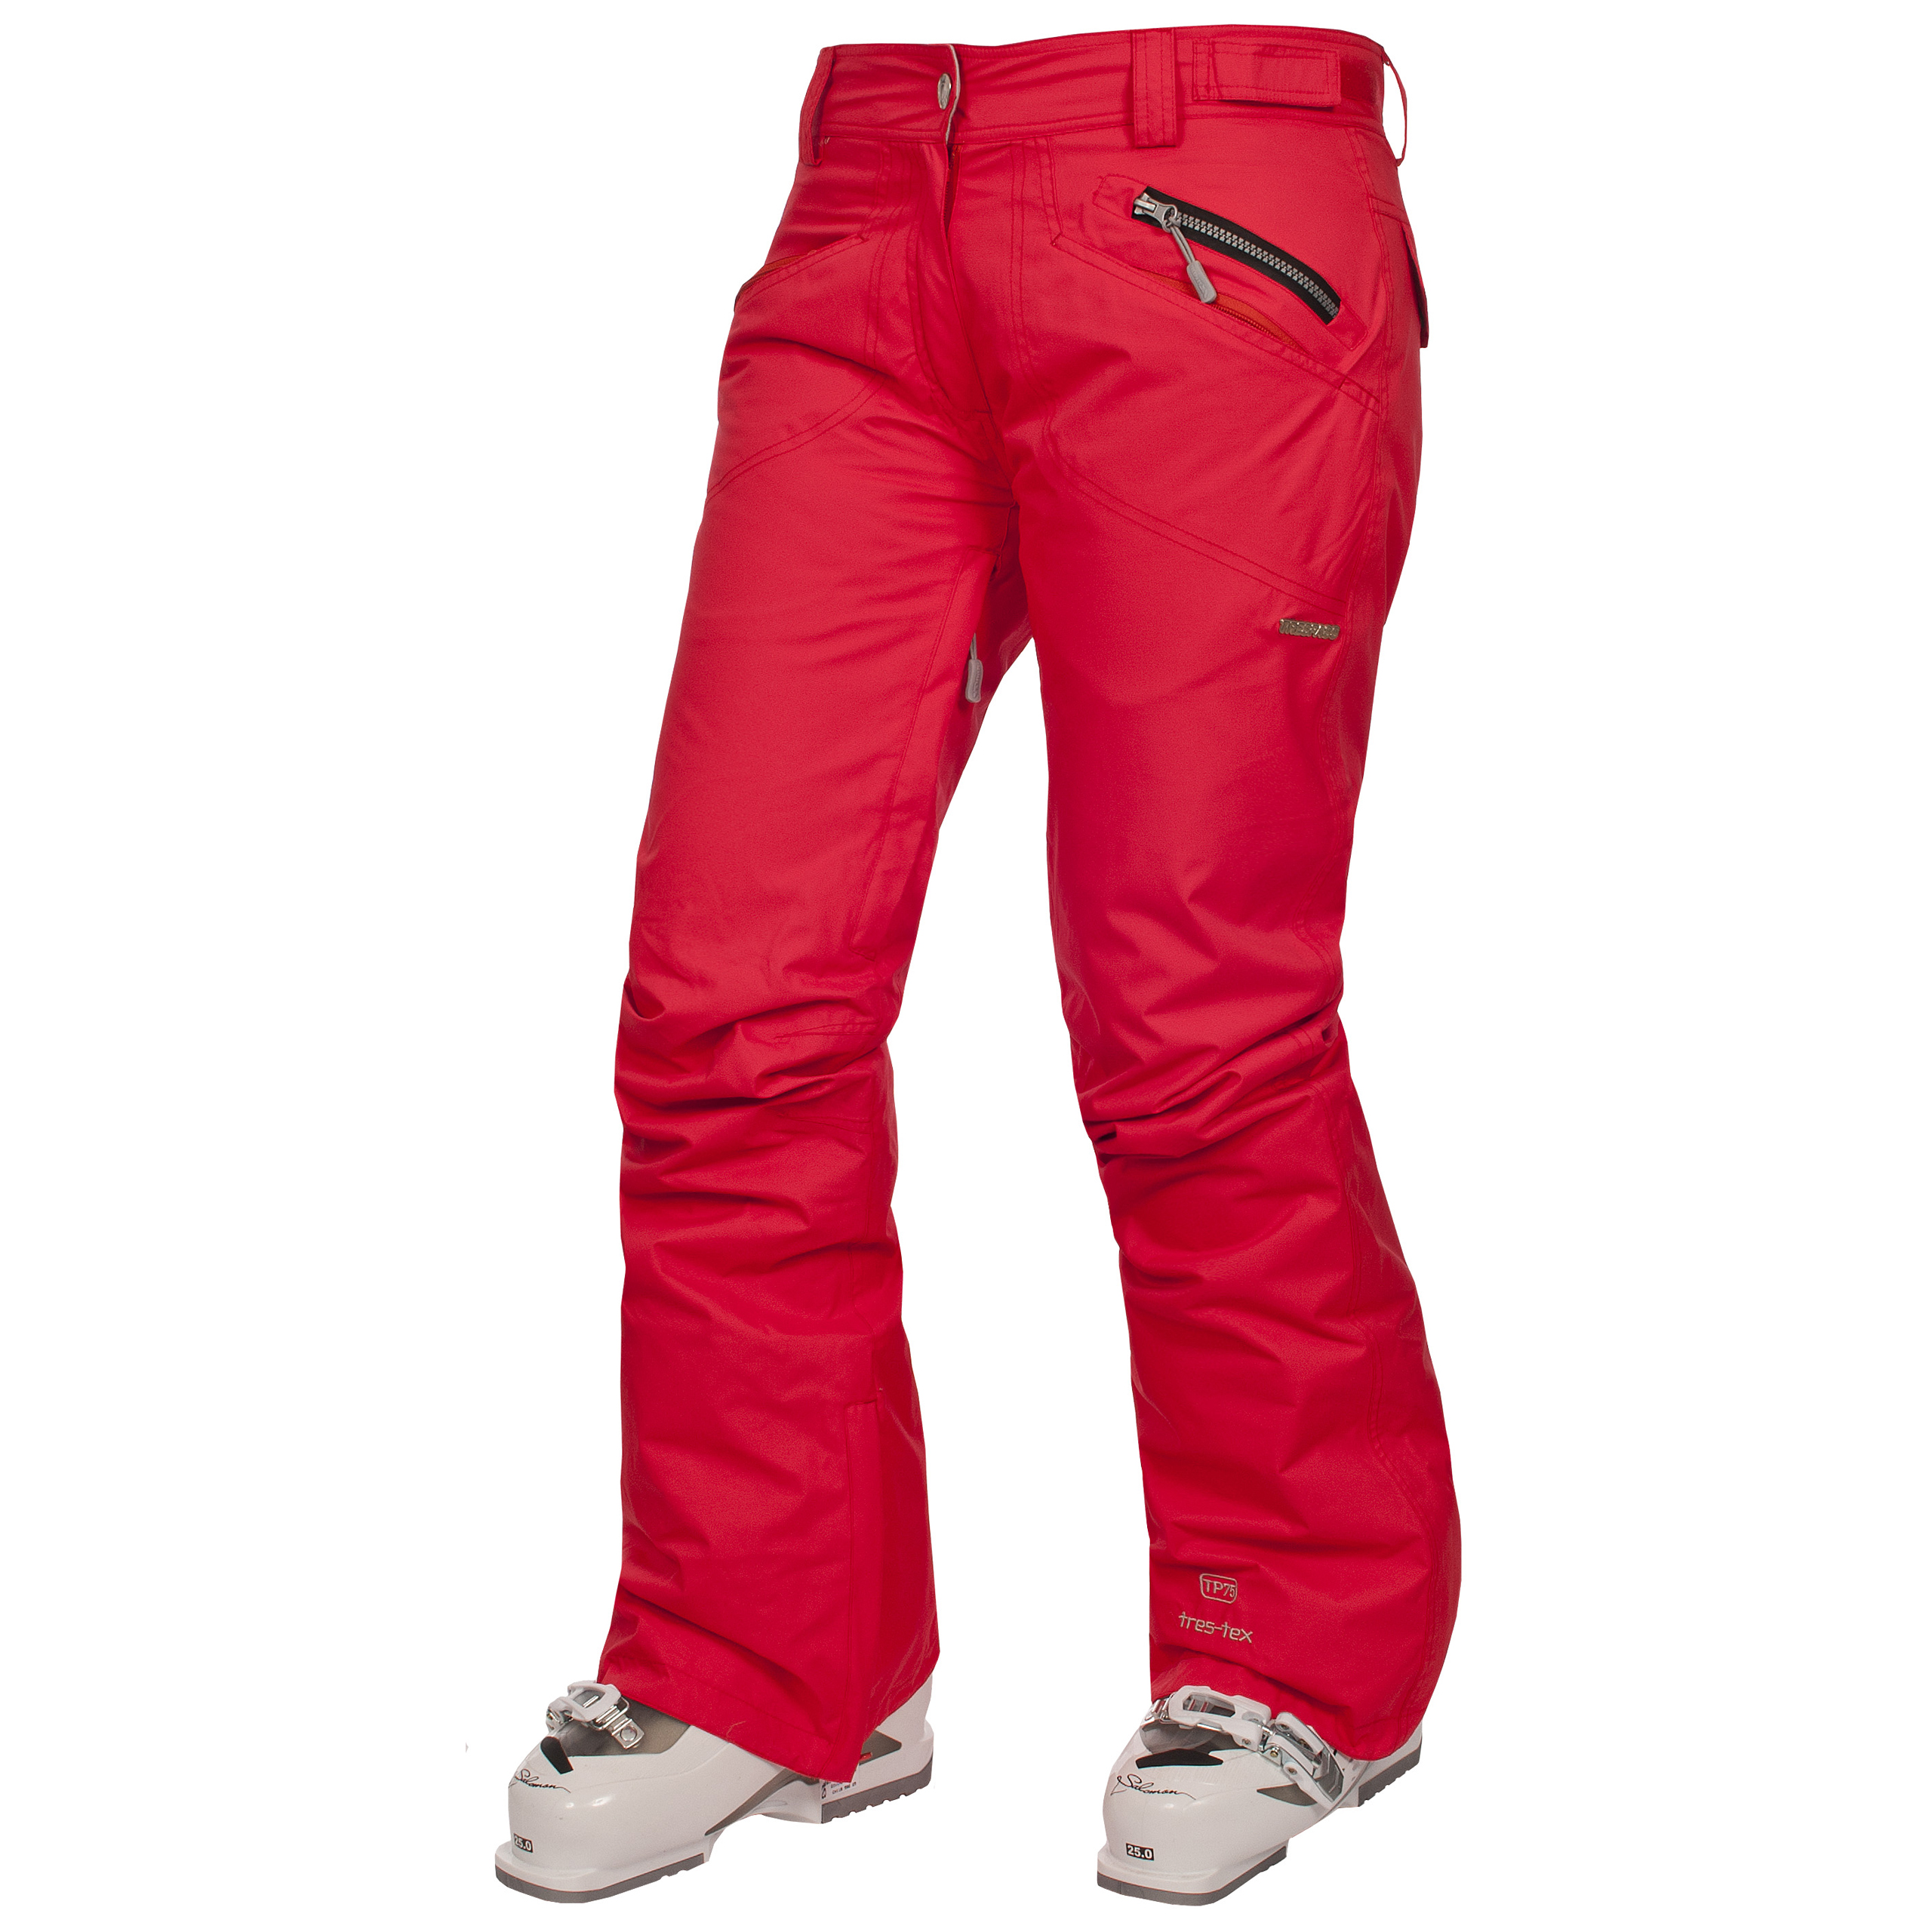 Ski pants and bibs are a must have for any winter getaway. Just because you're out in the snow doesn't mean you have to sacrifice comfort. Choose women's snow pants and bibs lined with rich, soft fabric-like fleece or synthetic insulators.